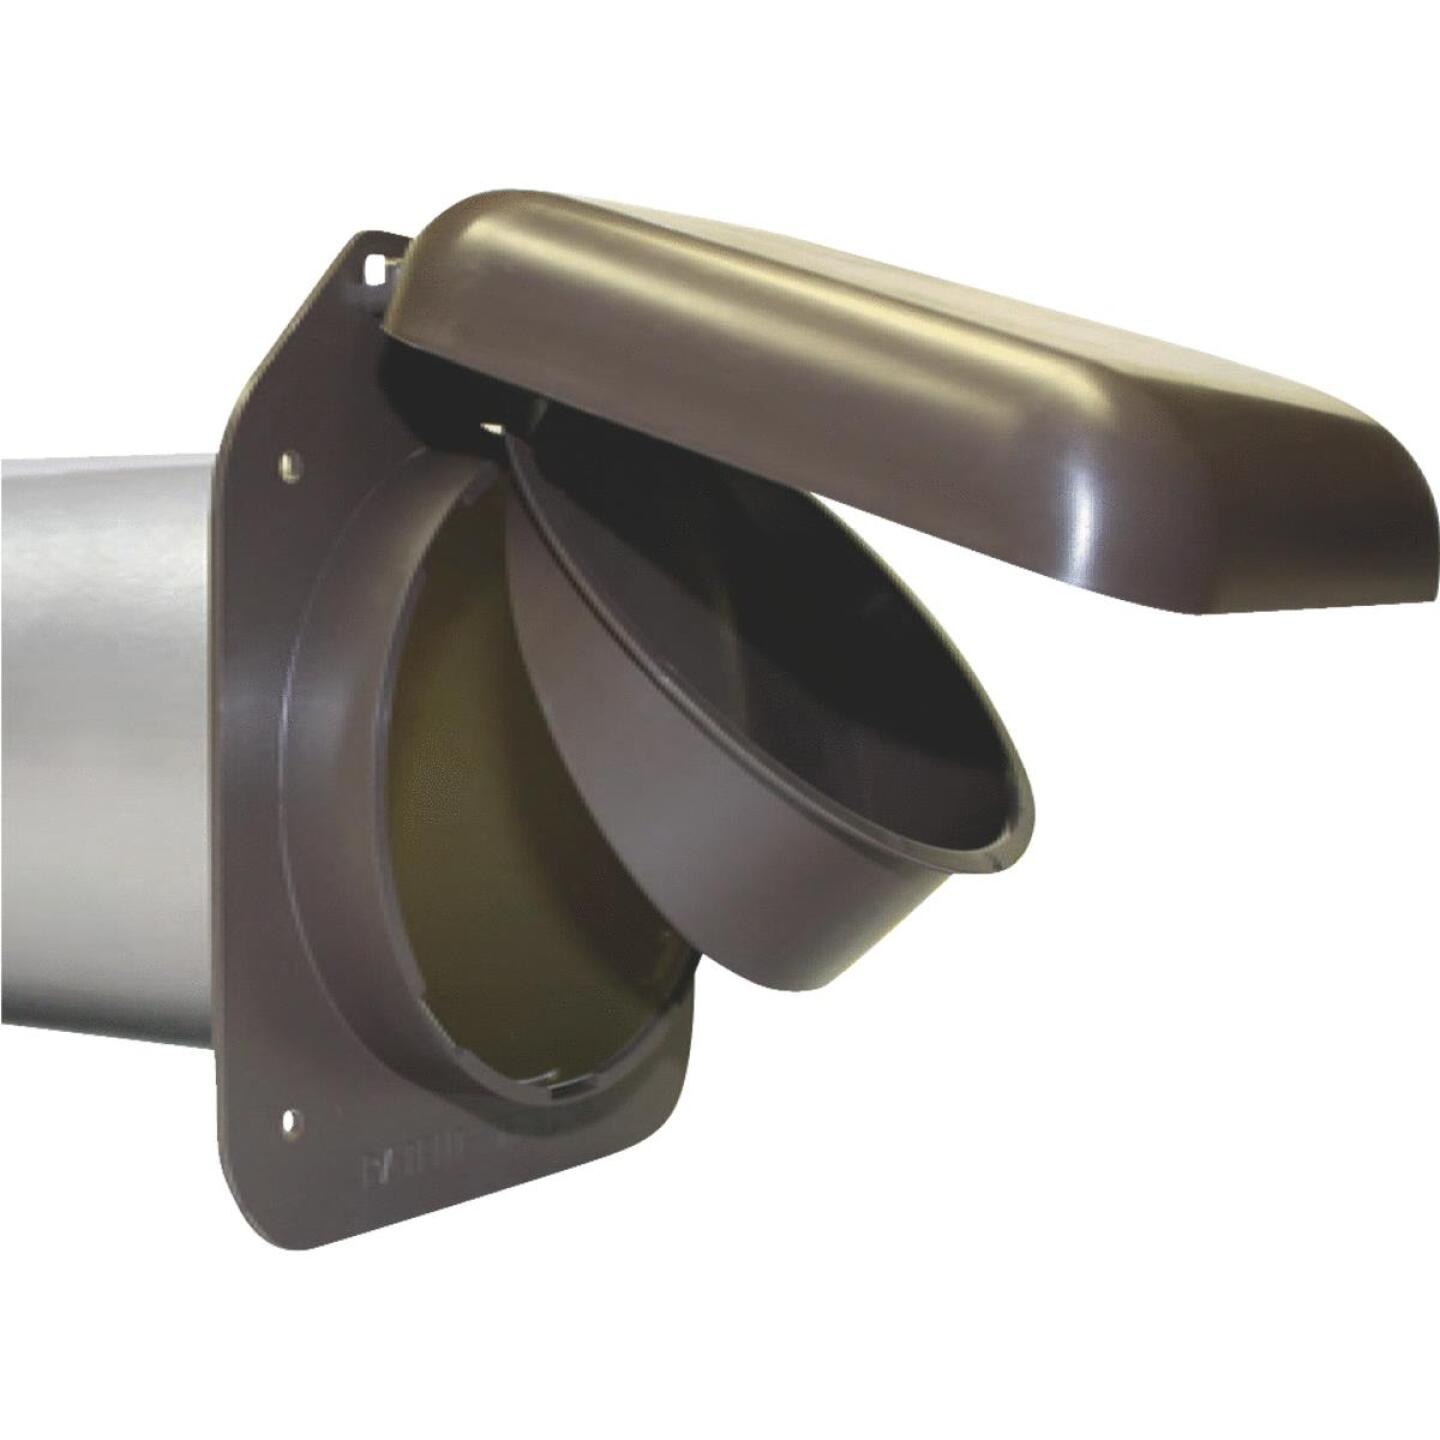 No-Pest 4 In. Brown Plastic Low Profile Dryer Vent Hood Image 1